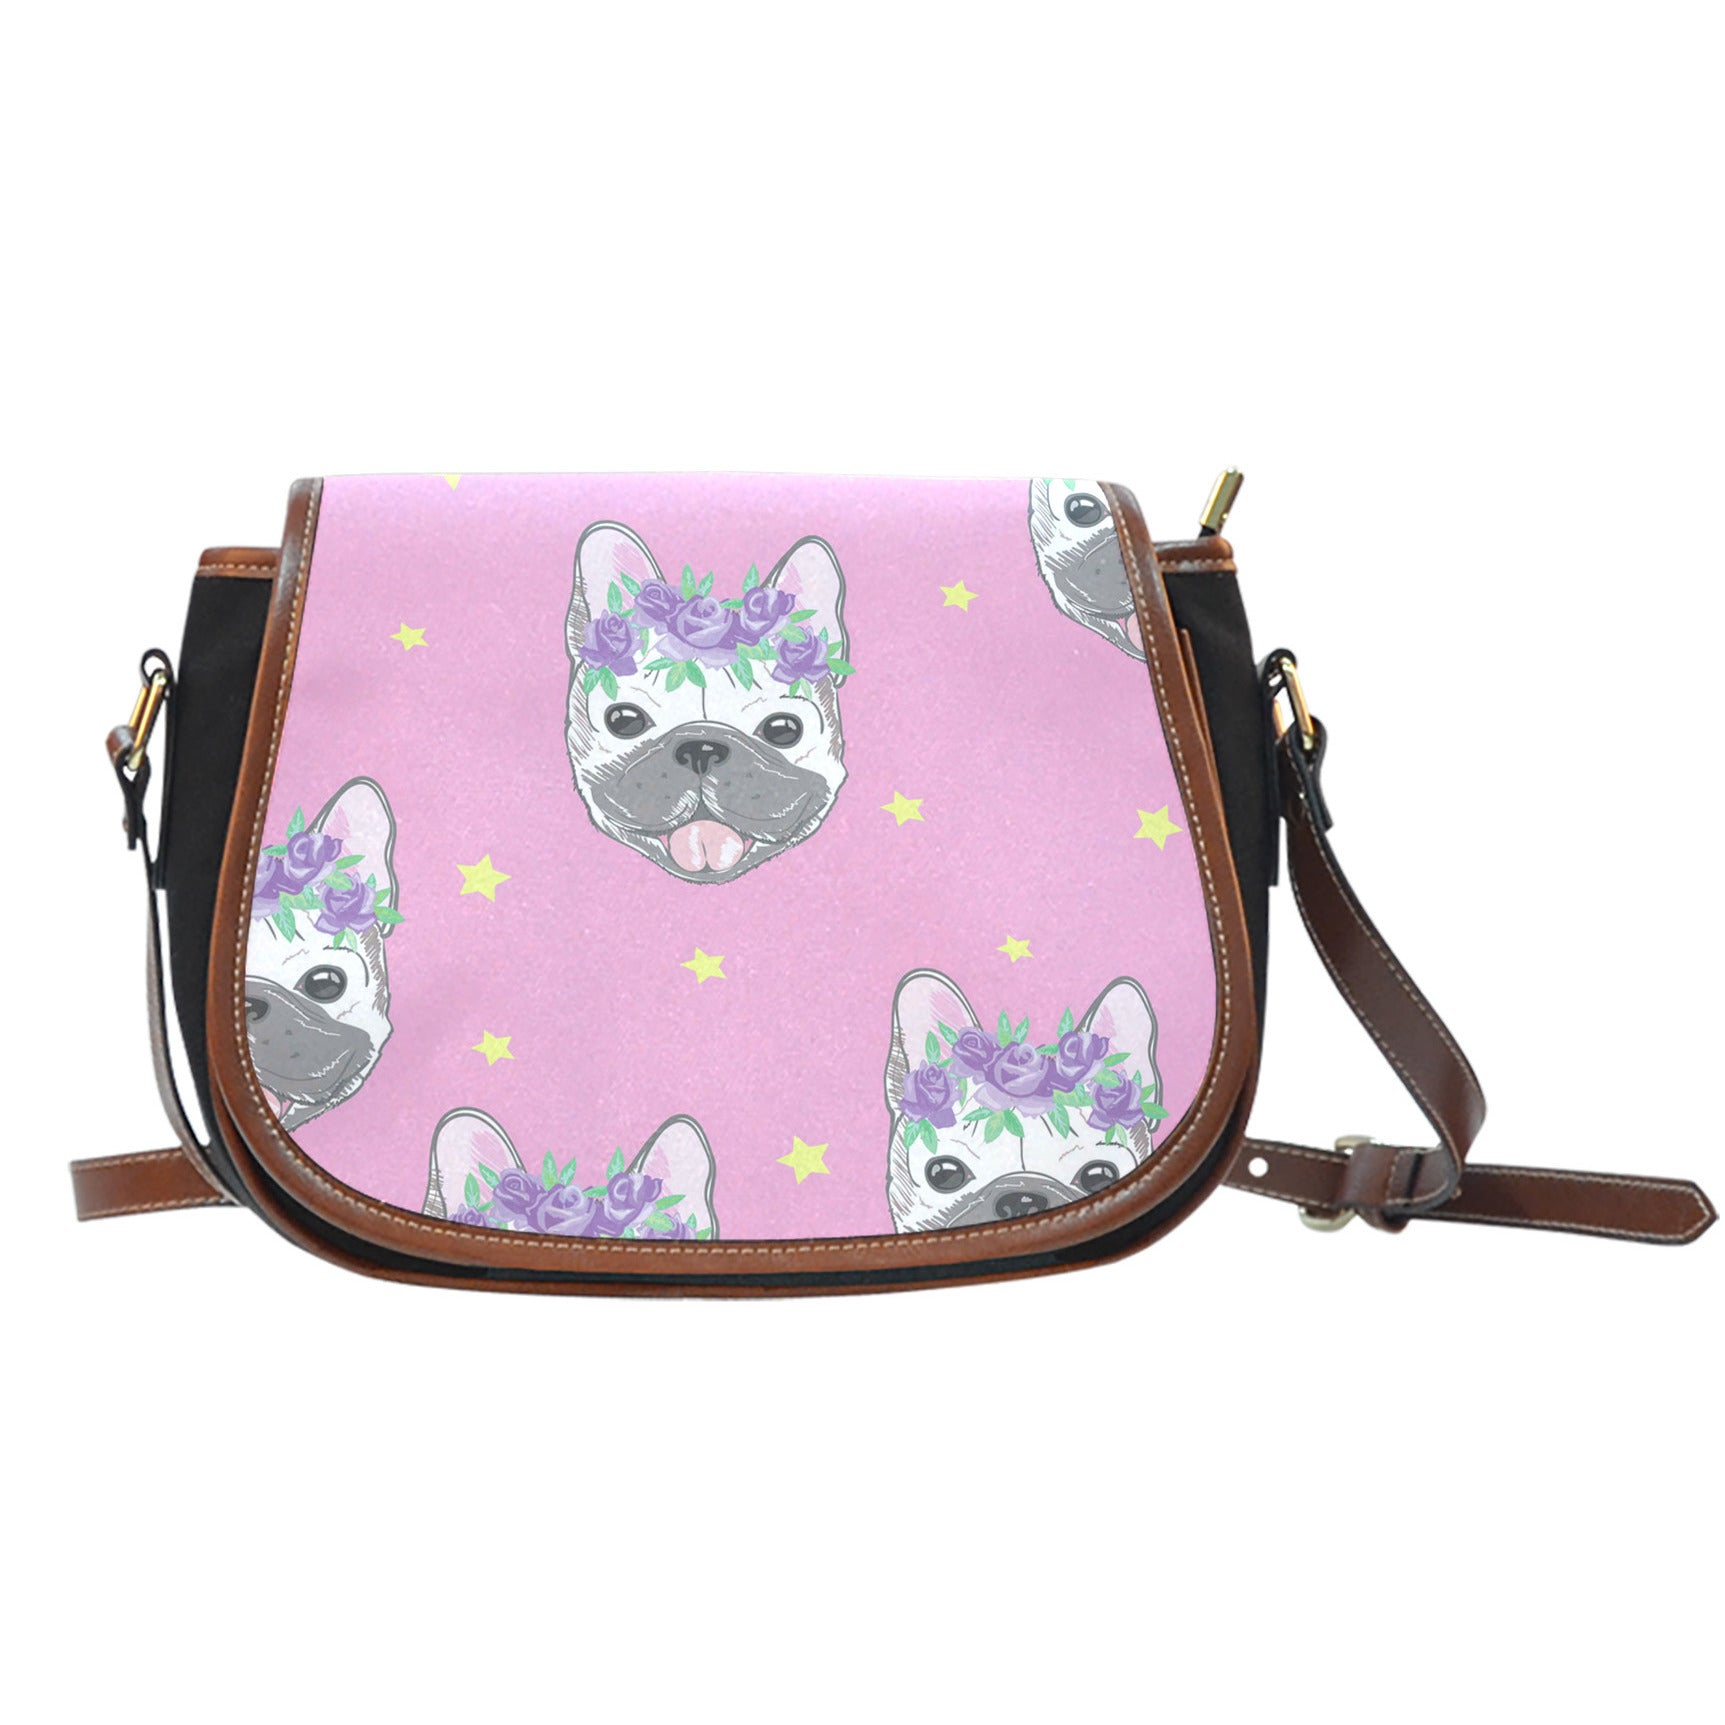 Happy Frenchie - French Bulldog Saddle Bag - frenchie Shop